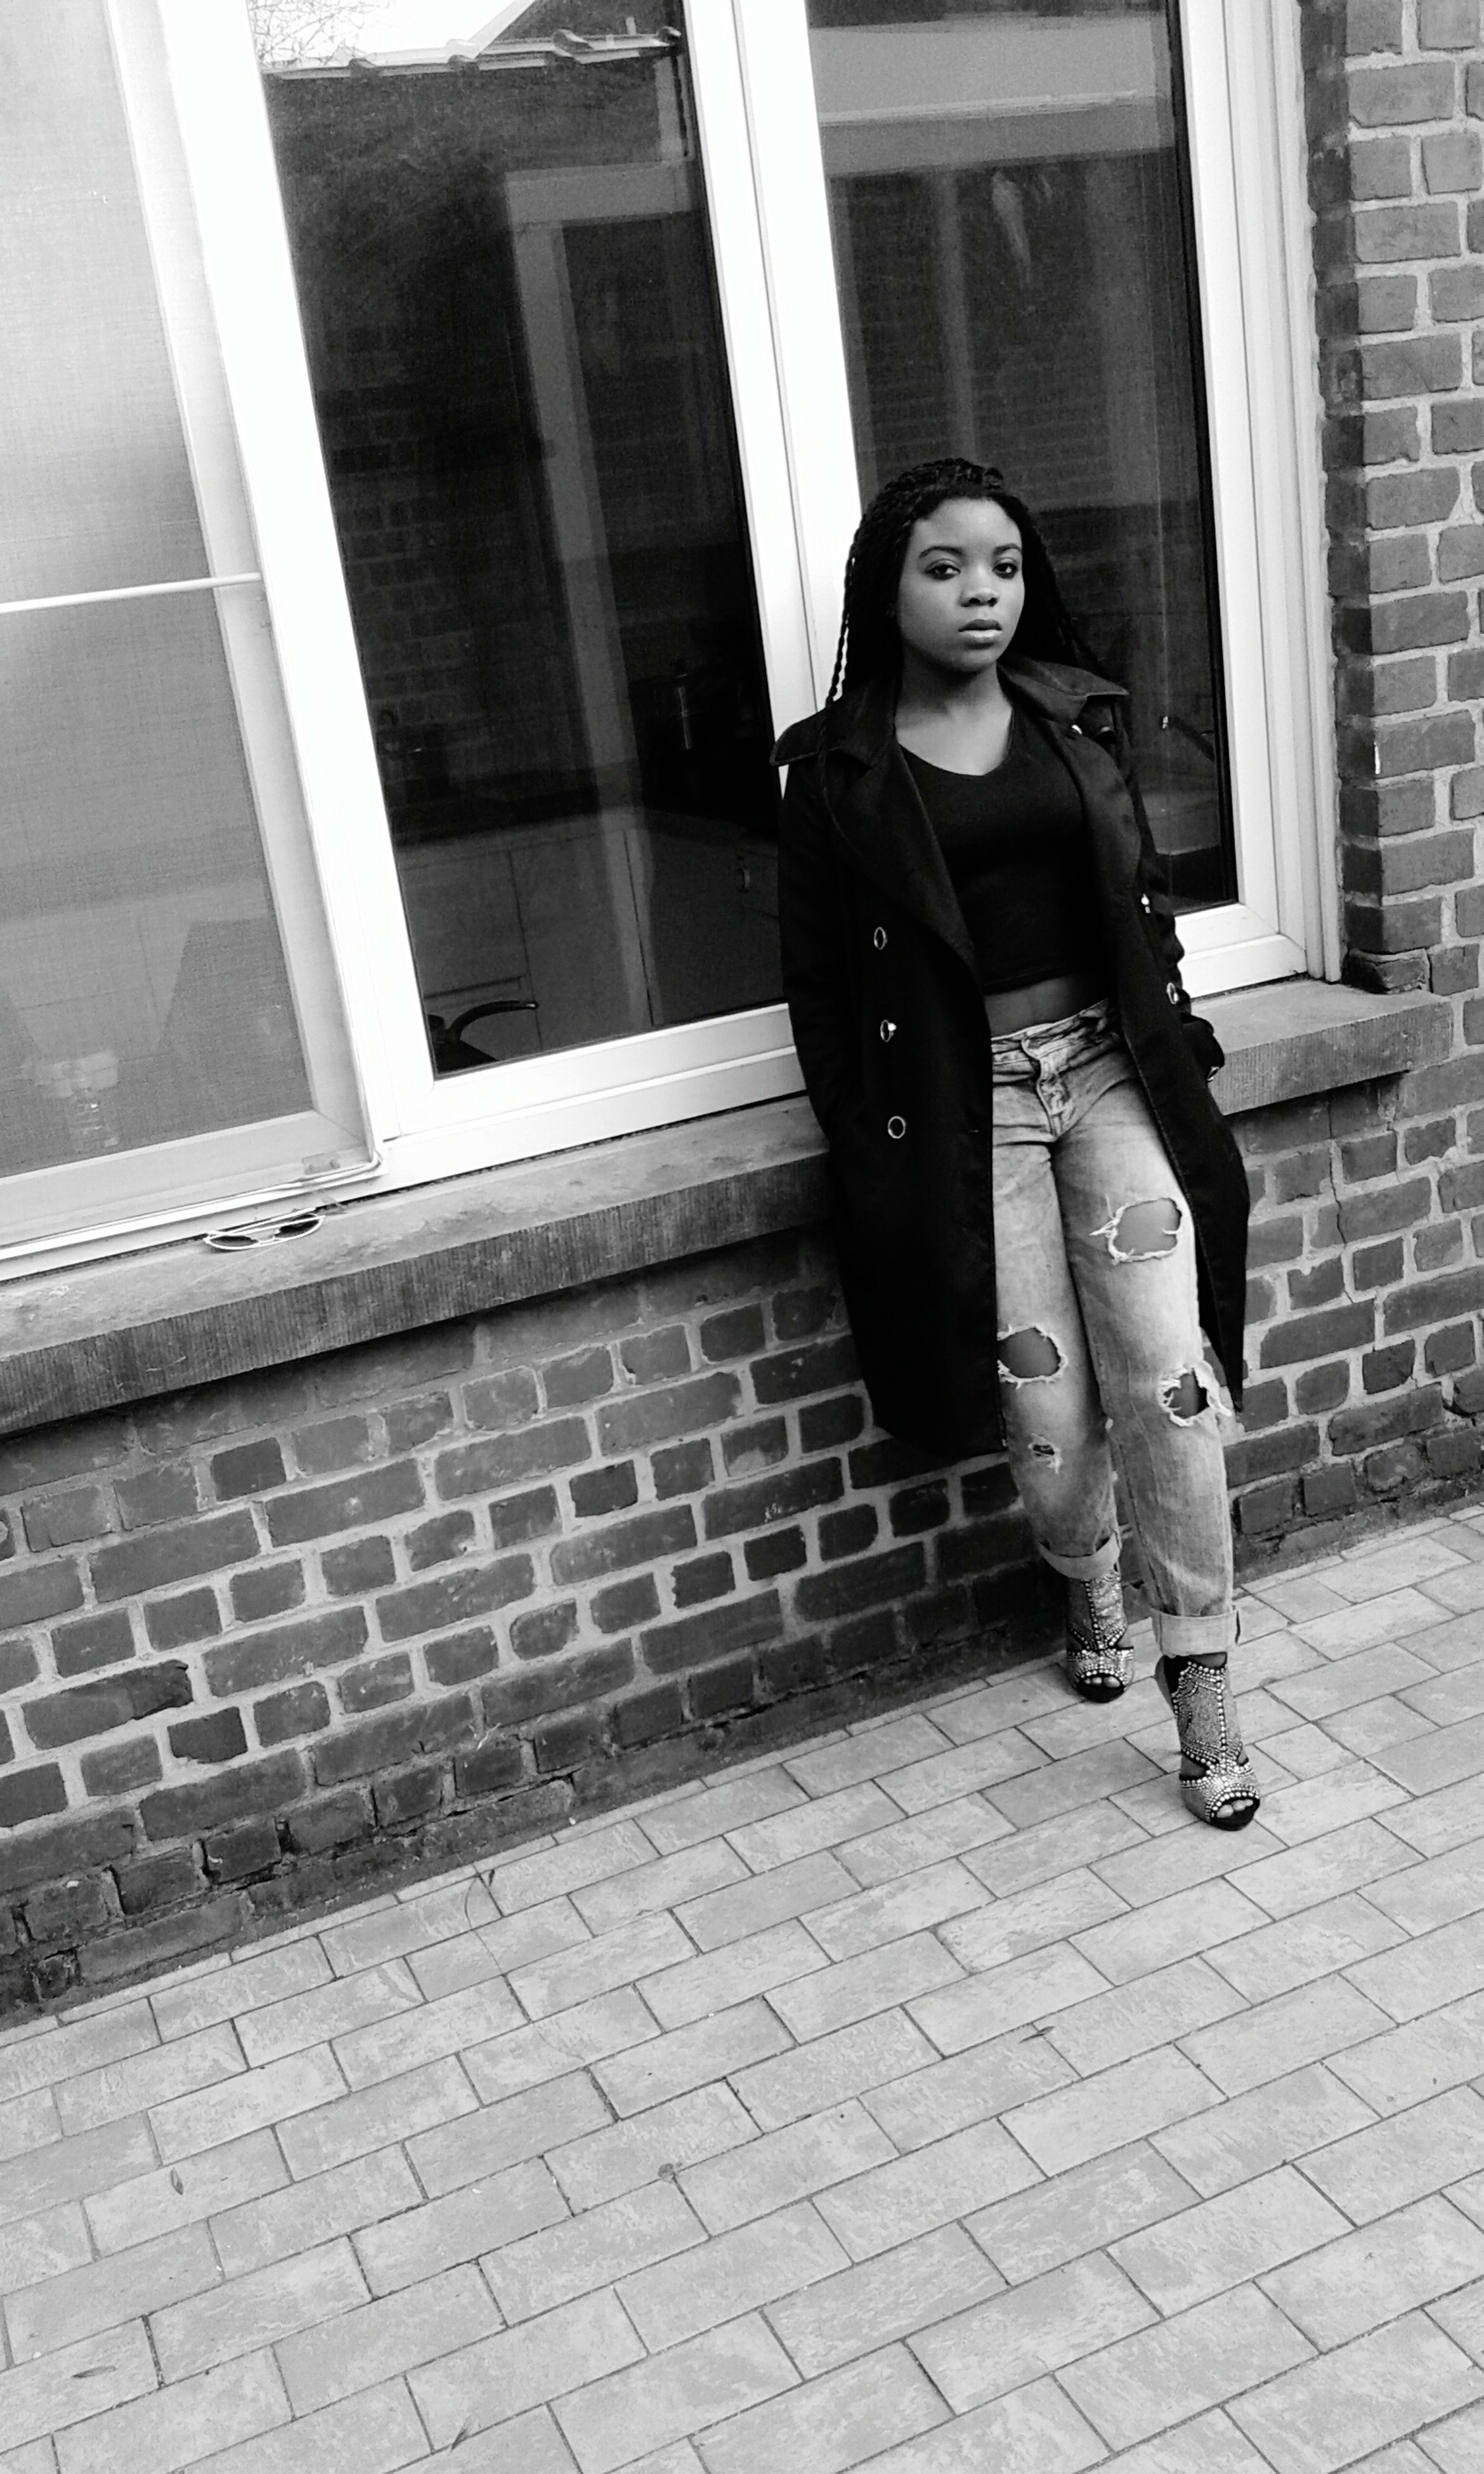 full length, young adult, casual clothing, person, building exterior, lifestyles, architecture, built structure, young women, front view, standing, looking at camera, leisure activity, portrait, steps, brick wall, hands in pockets